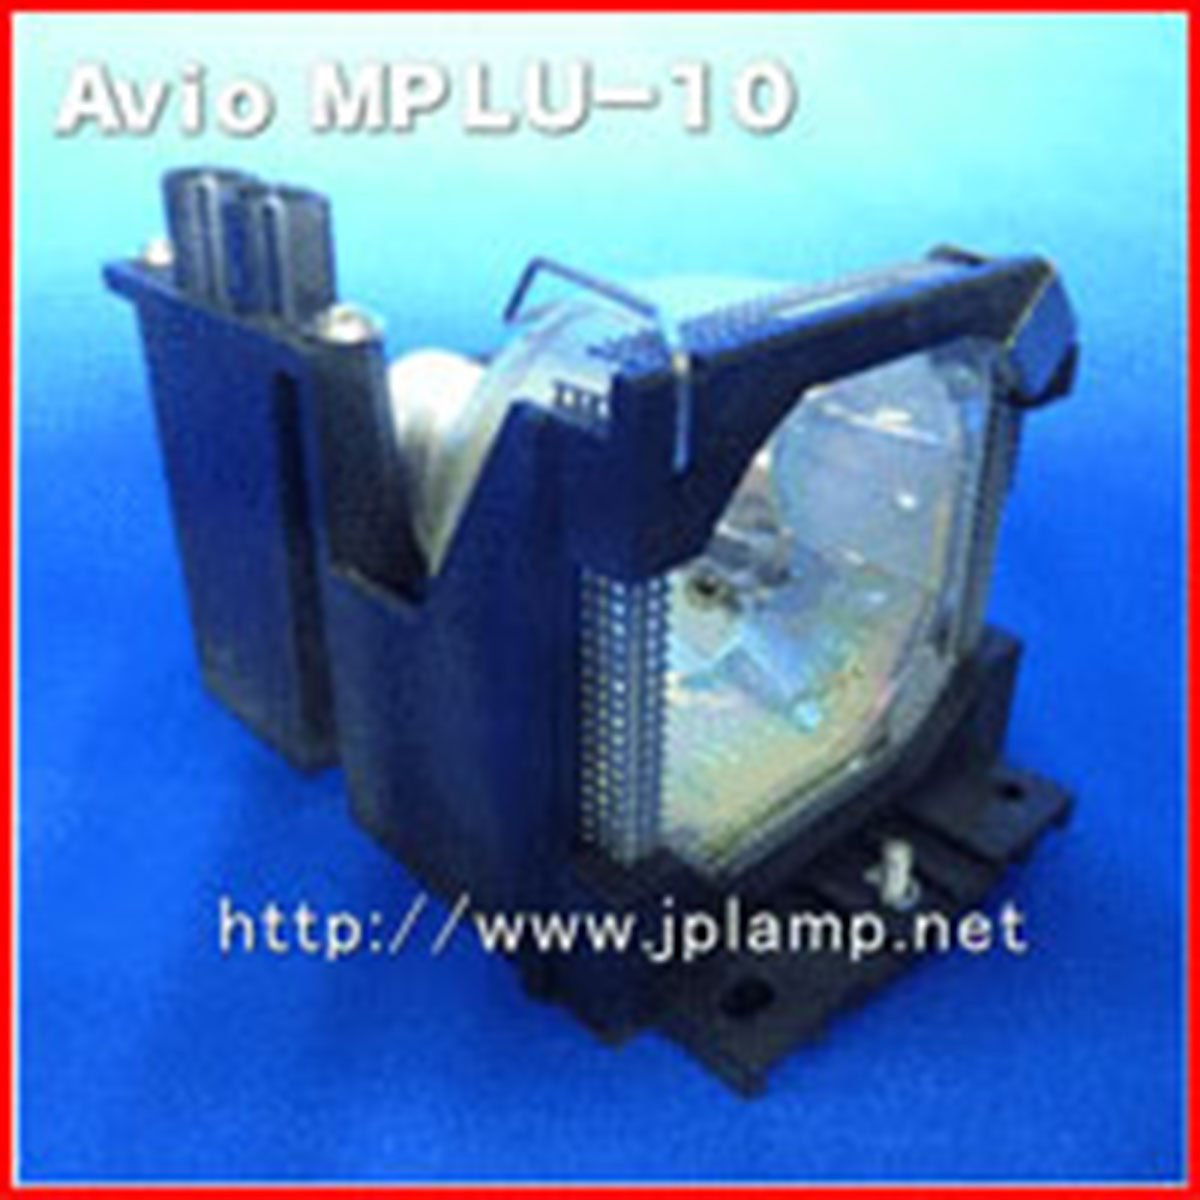 SpArc 交換用ランプ 囲い/電球付き Avio MPAF-10用 Economy Economy Lamp with Housing B07MPT7X9Y